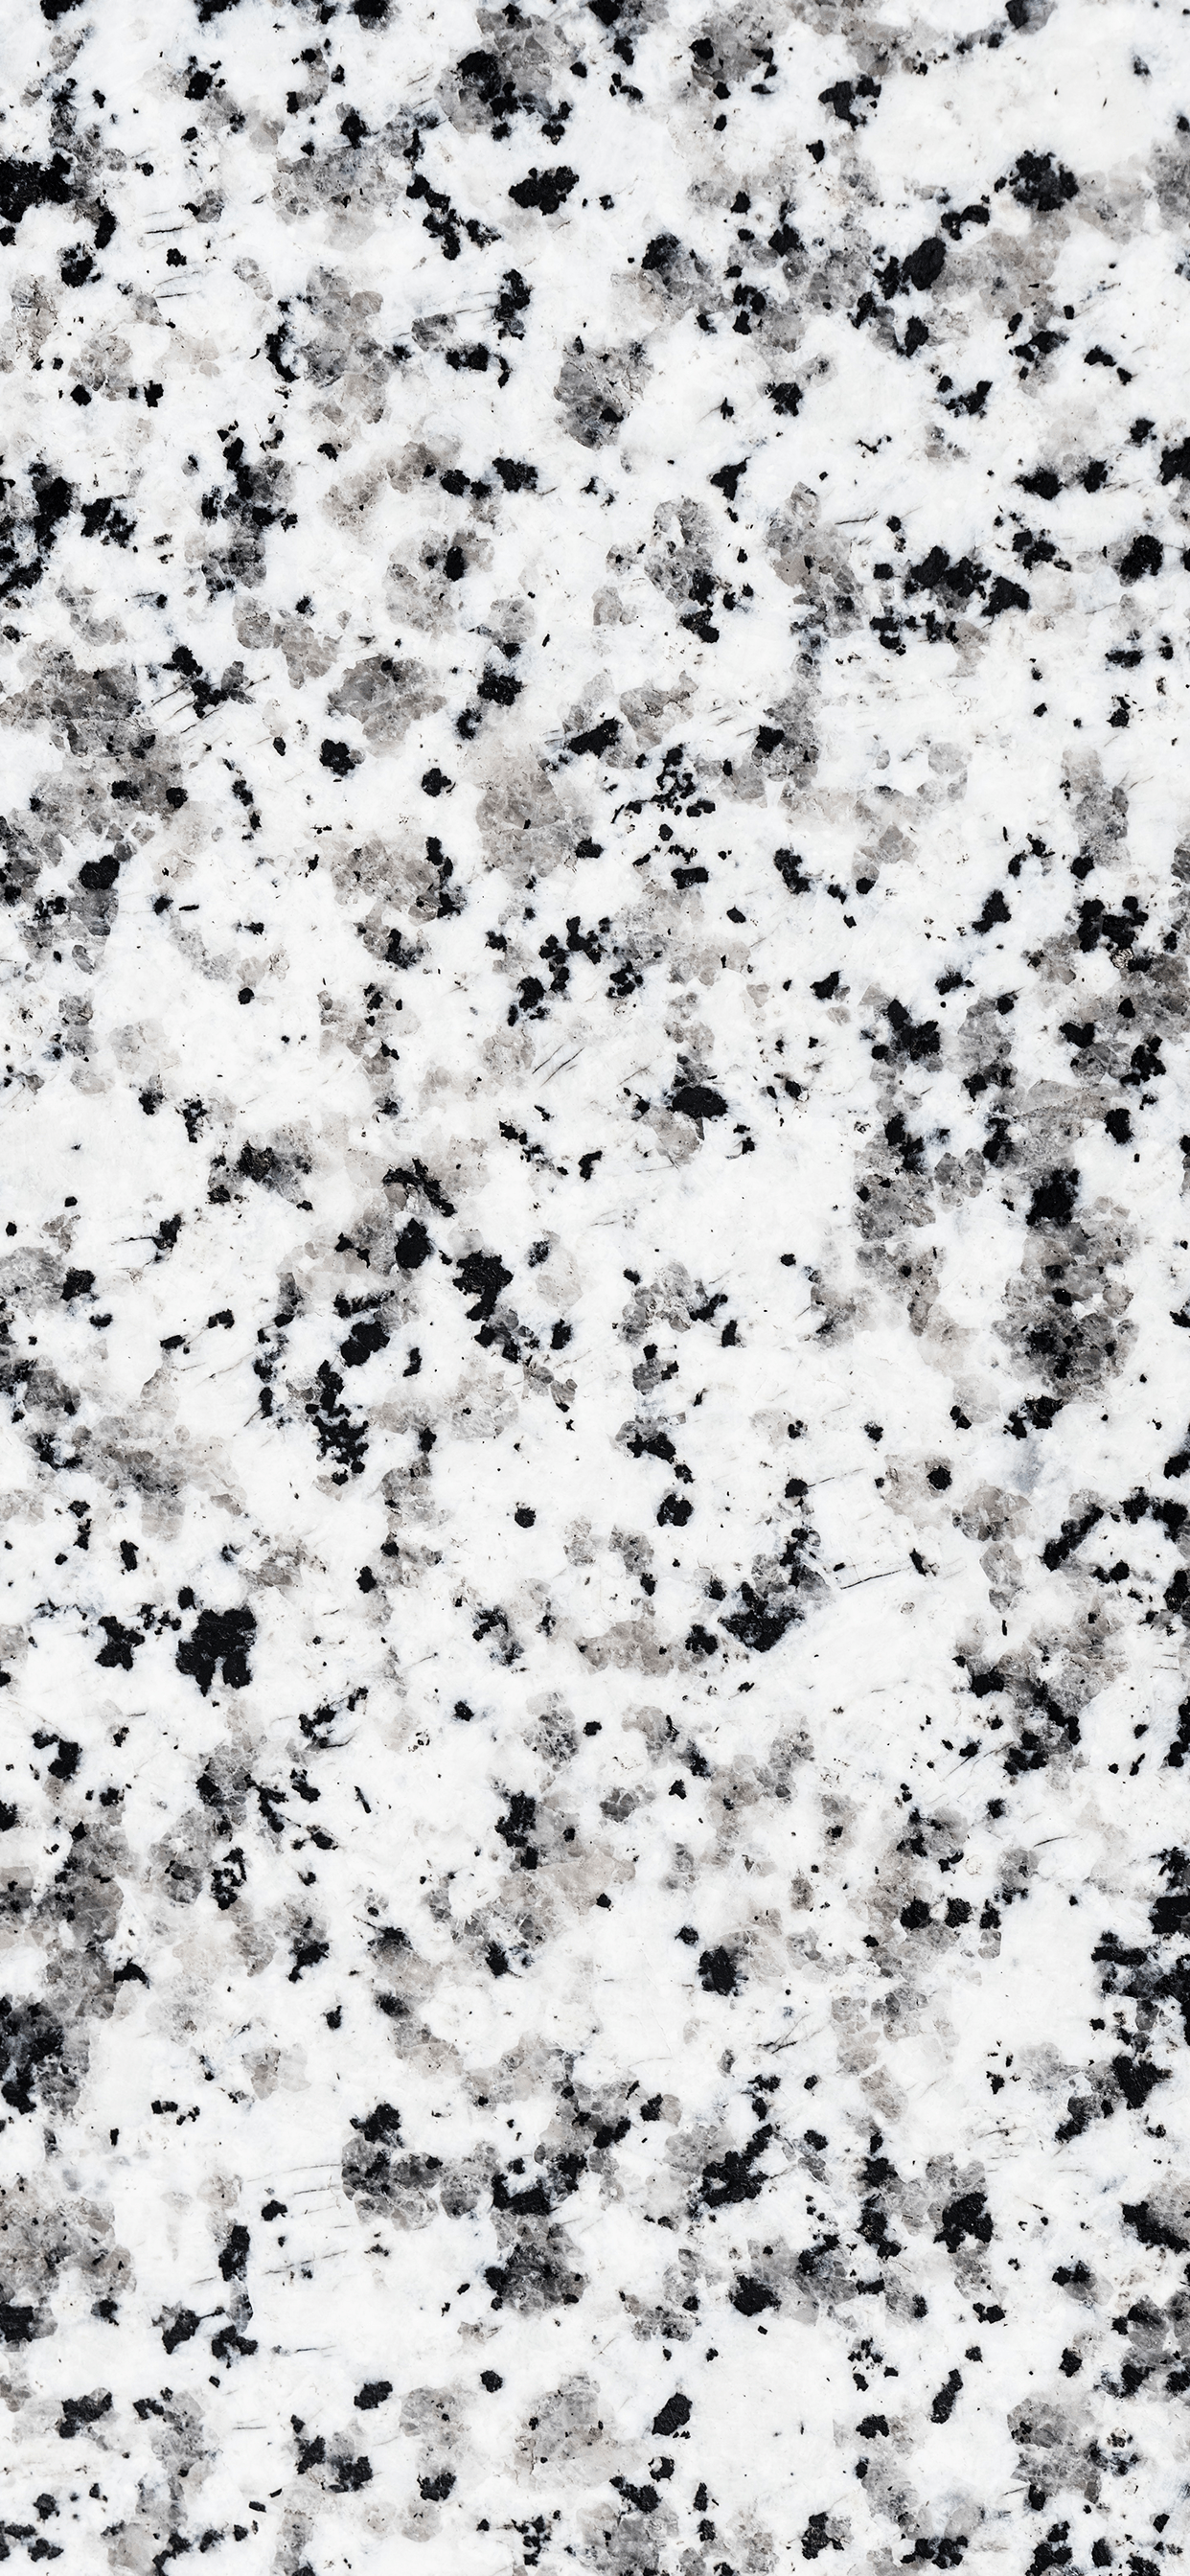 Marble Iphone Wallpapers On Wallpaperdog